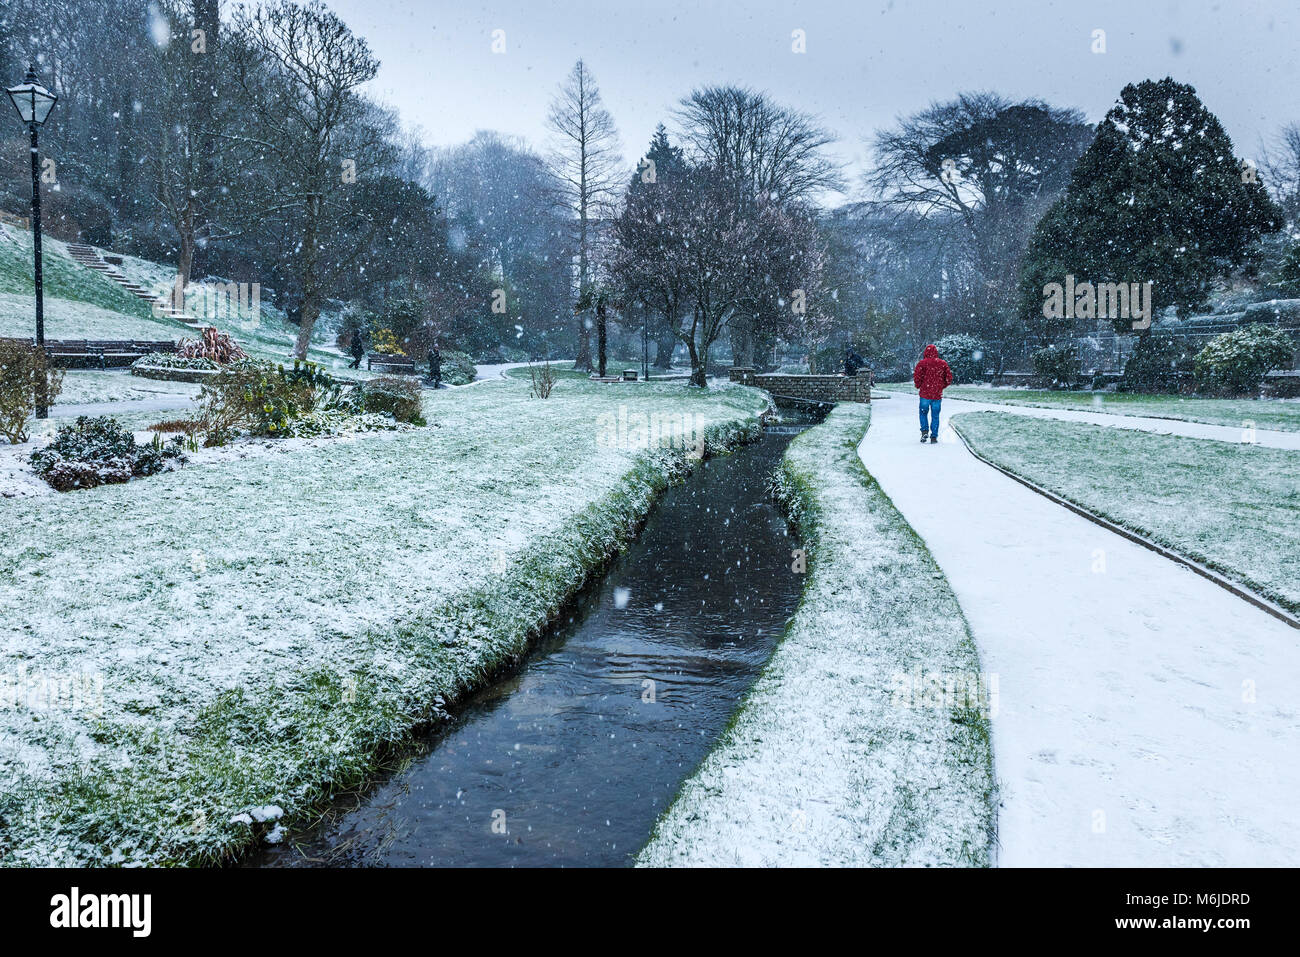 People walking through heavy snowfall in Trenance Gardens in Newquay Cornwall. - Stock Image